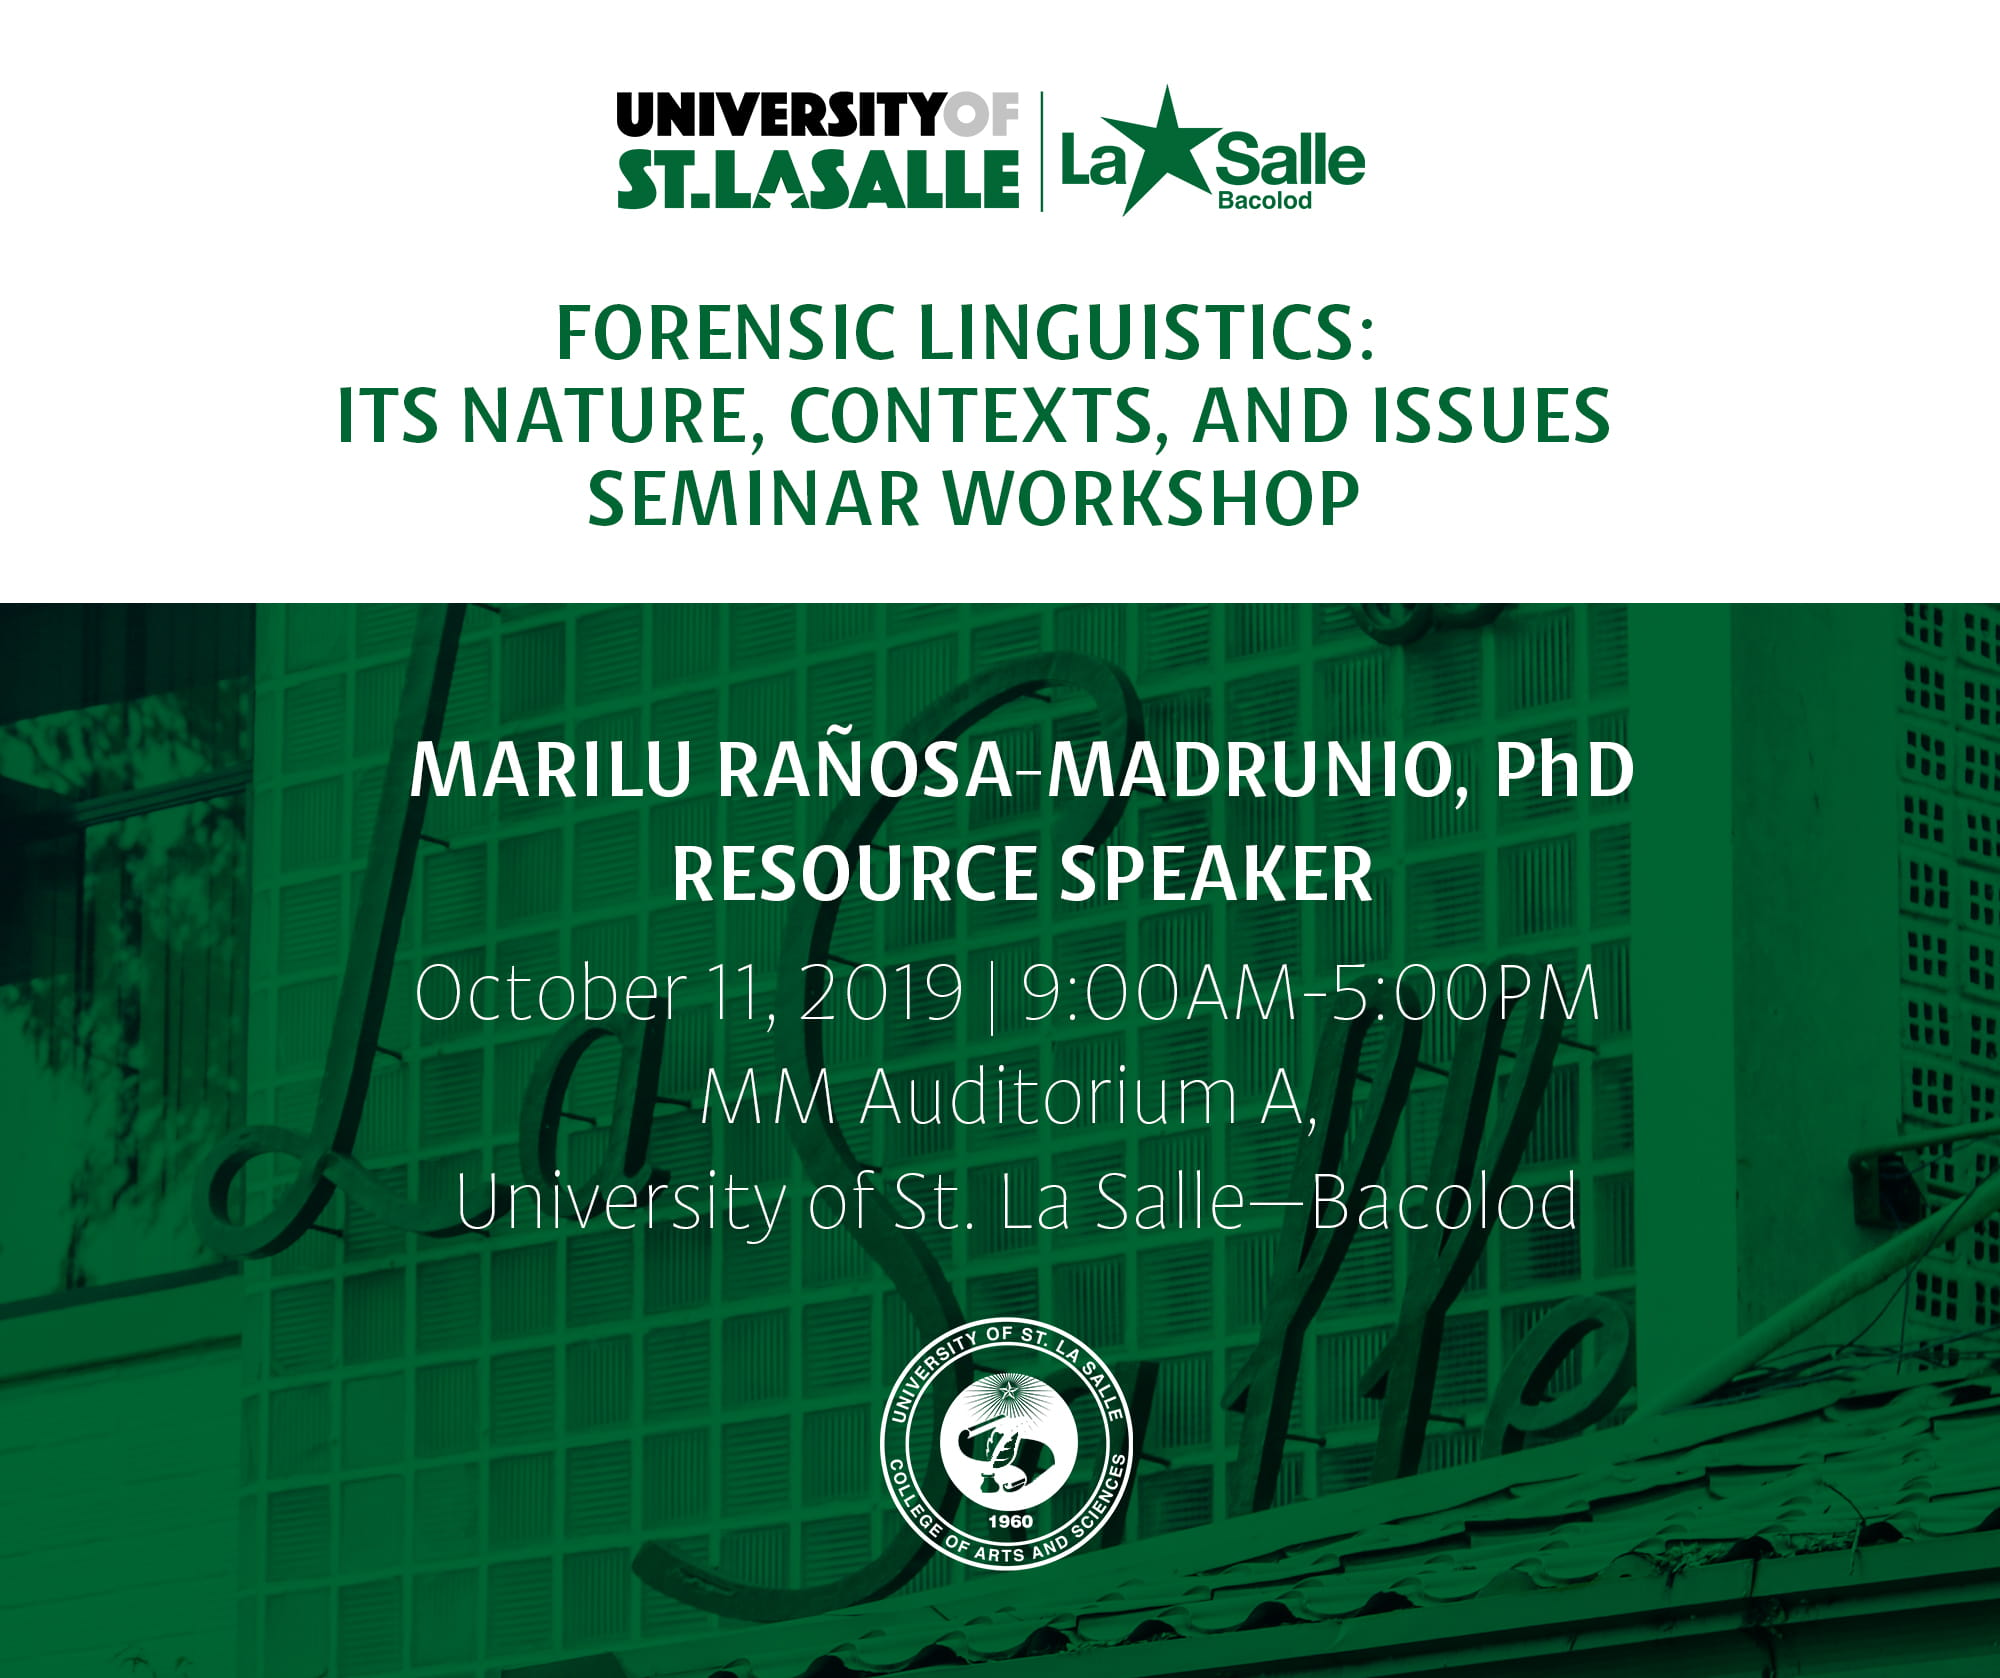 FORENSIC-LINGUISTICS-SEMINAR-WORKSHOP.jpg